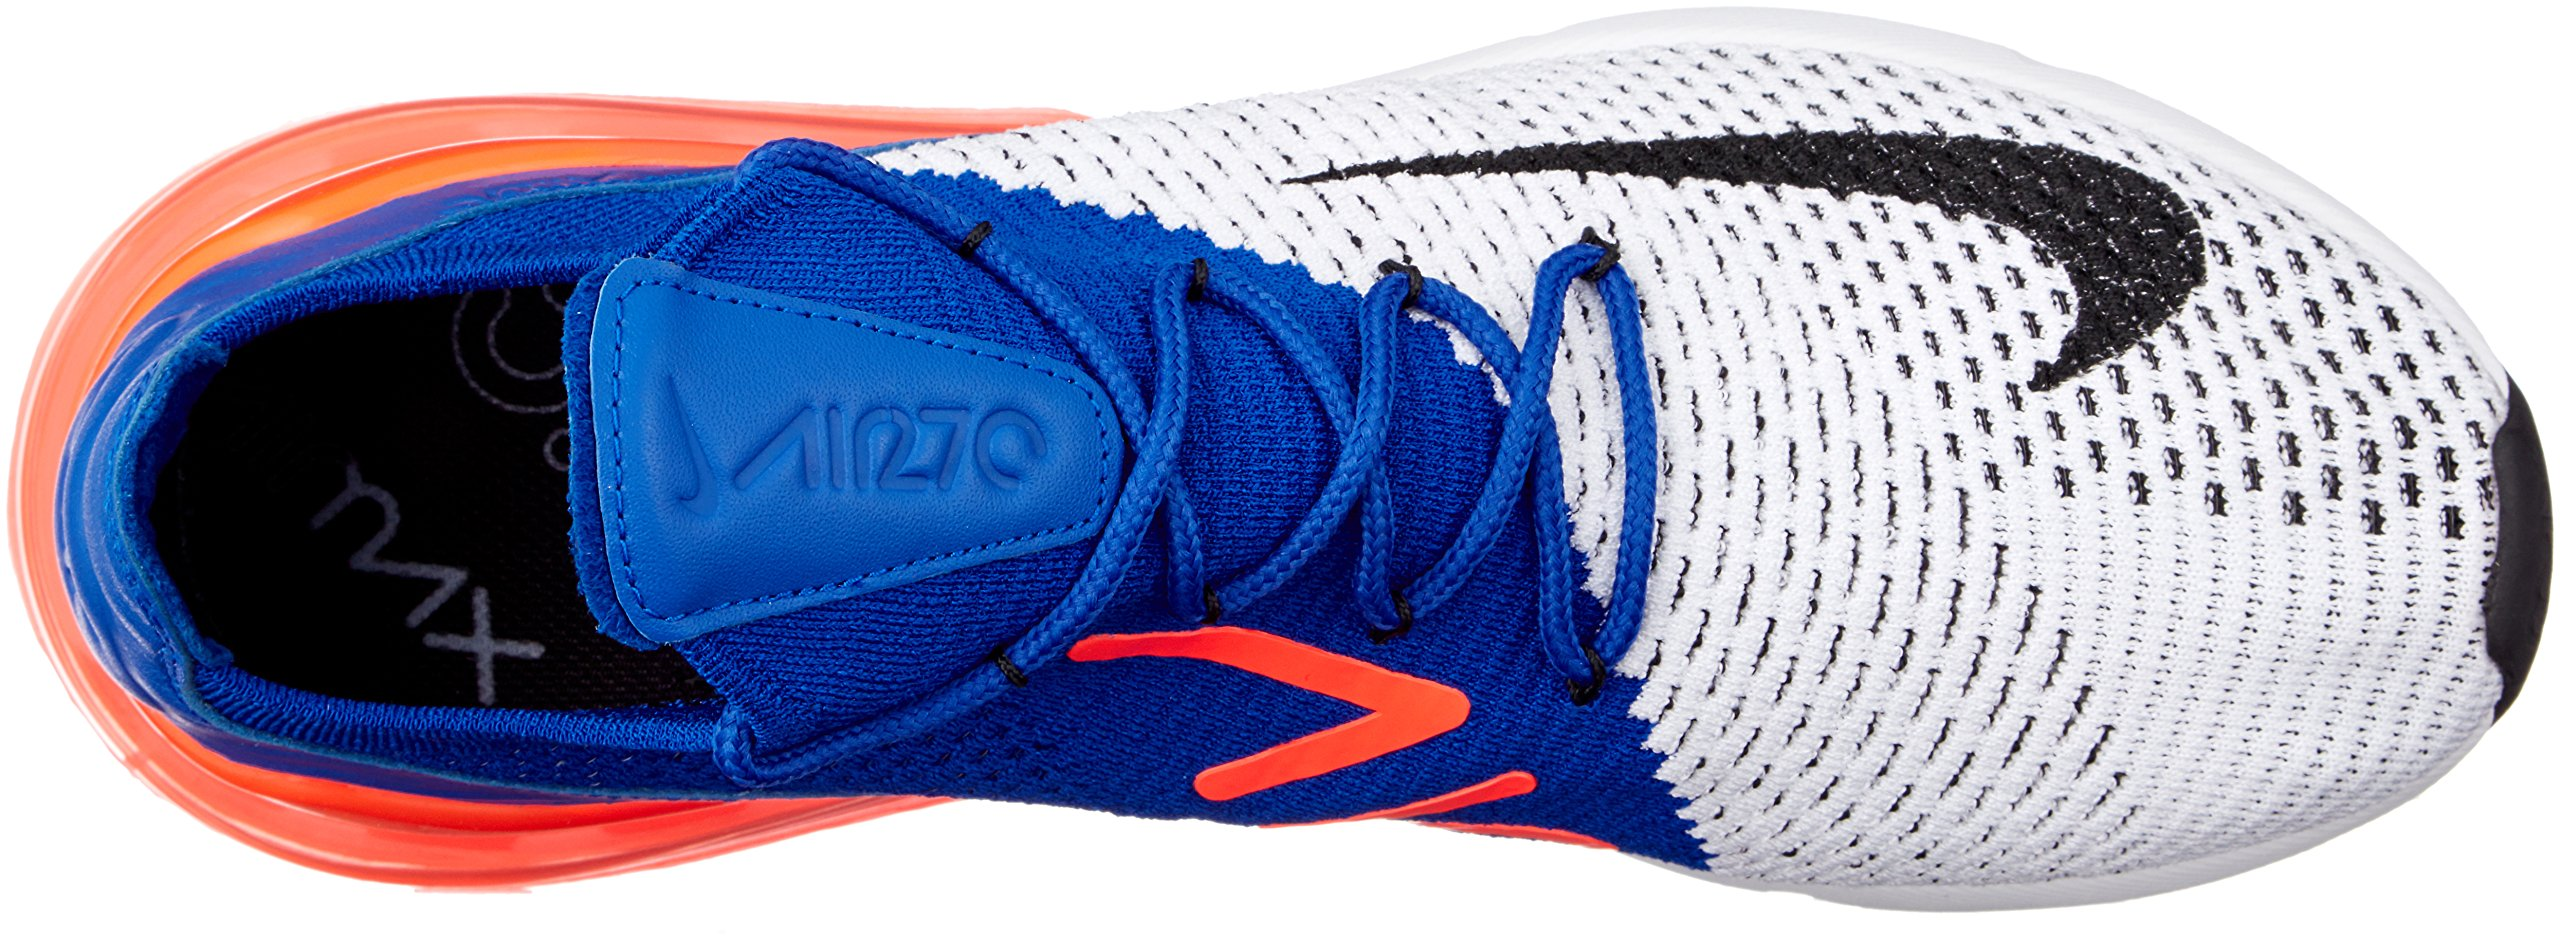 Nike Men's Air Max 270 Flyknit, White/Black-Racer Blue, 10.5 M US by Nike (Image #7)